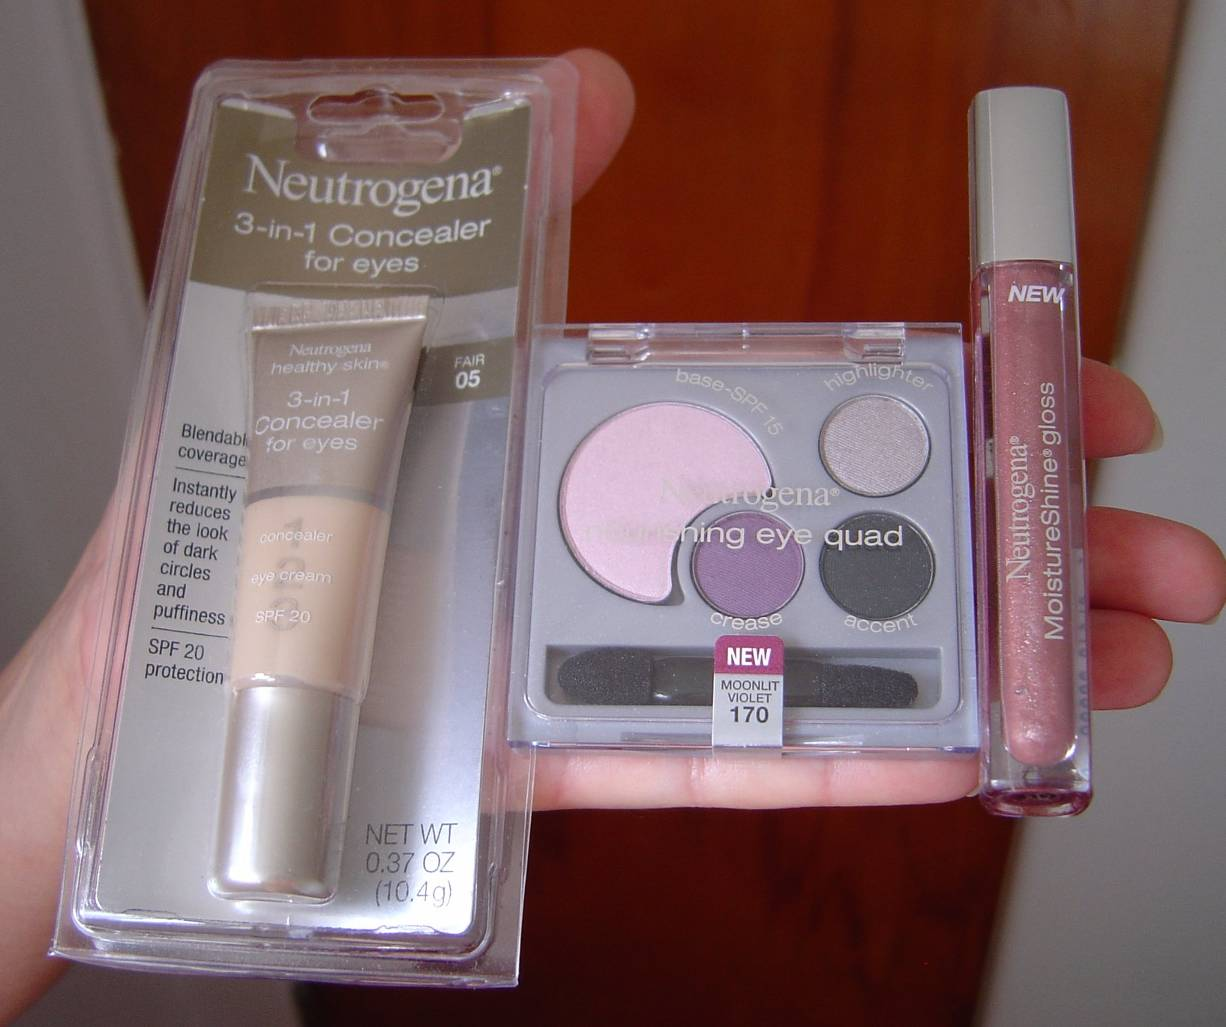 Neutrogena Cosmetics eye makeup assortment and lip gloss